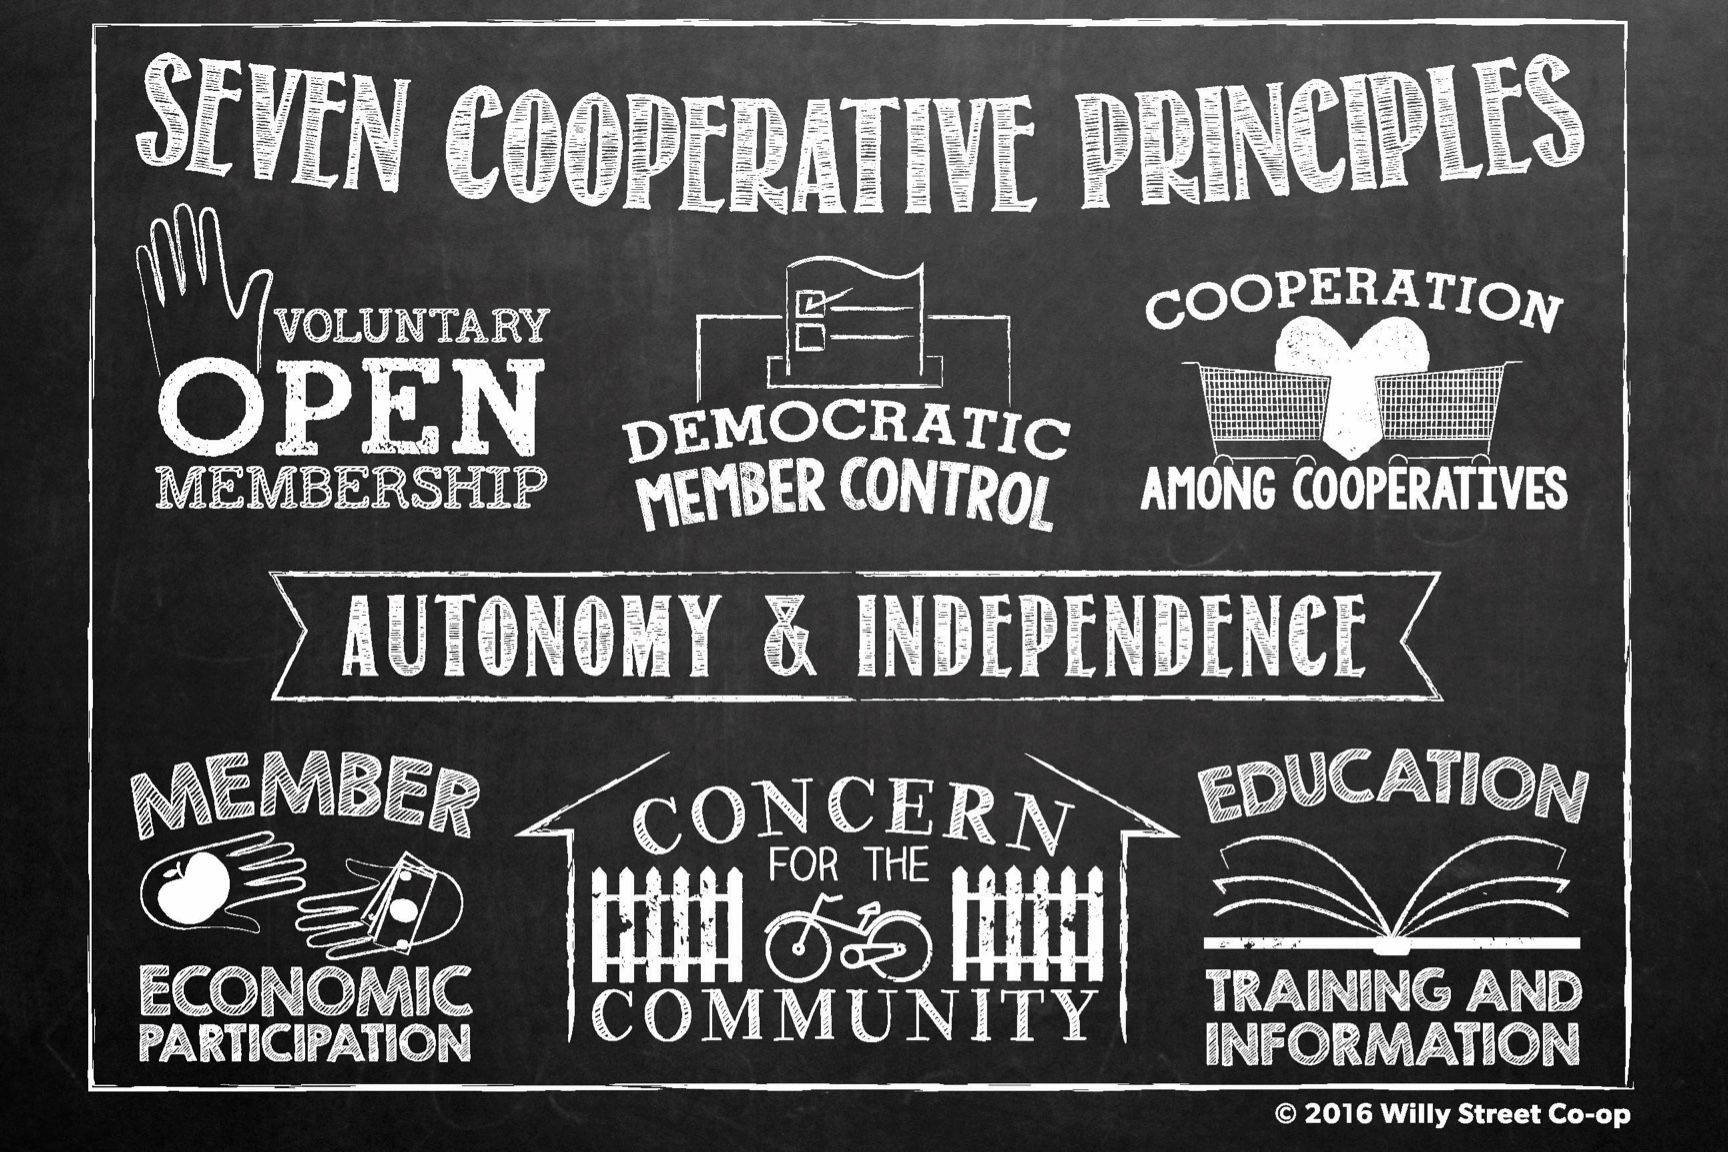 Seven Cooperative Principles: voluntary open membership, democratic member control, cooperation among cooperatives, autonomy and independence, member economic participation, concern for the community, and providing education and training.